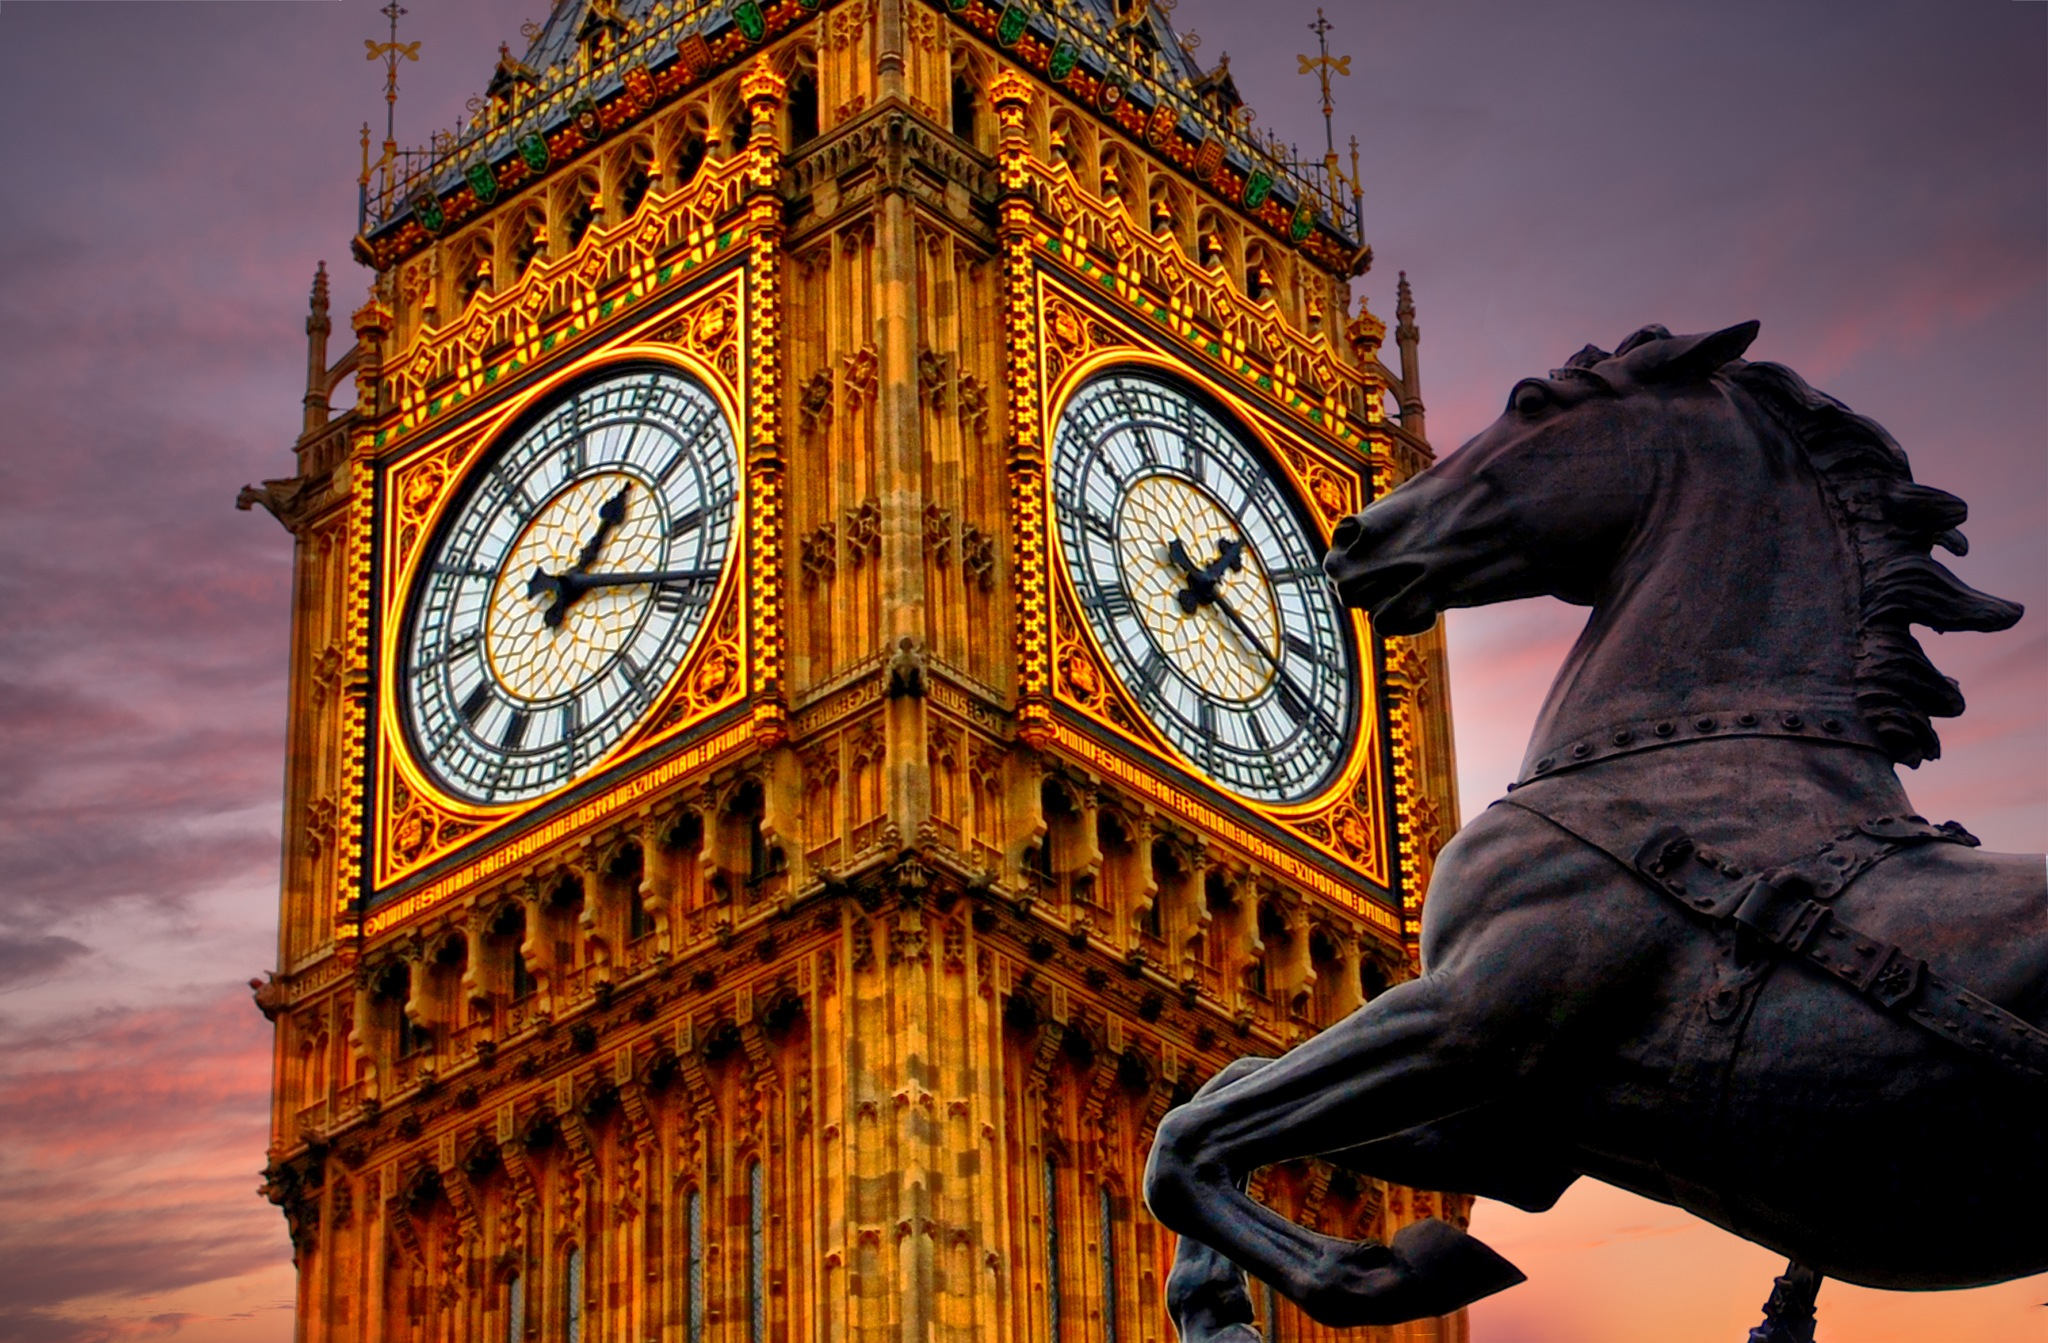 London Time by ribyt